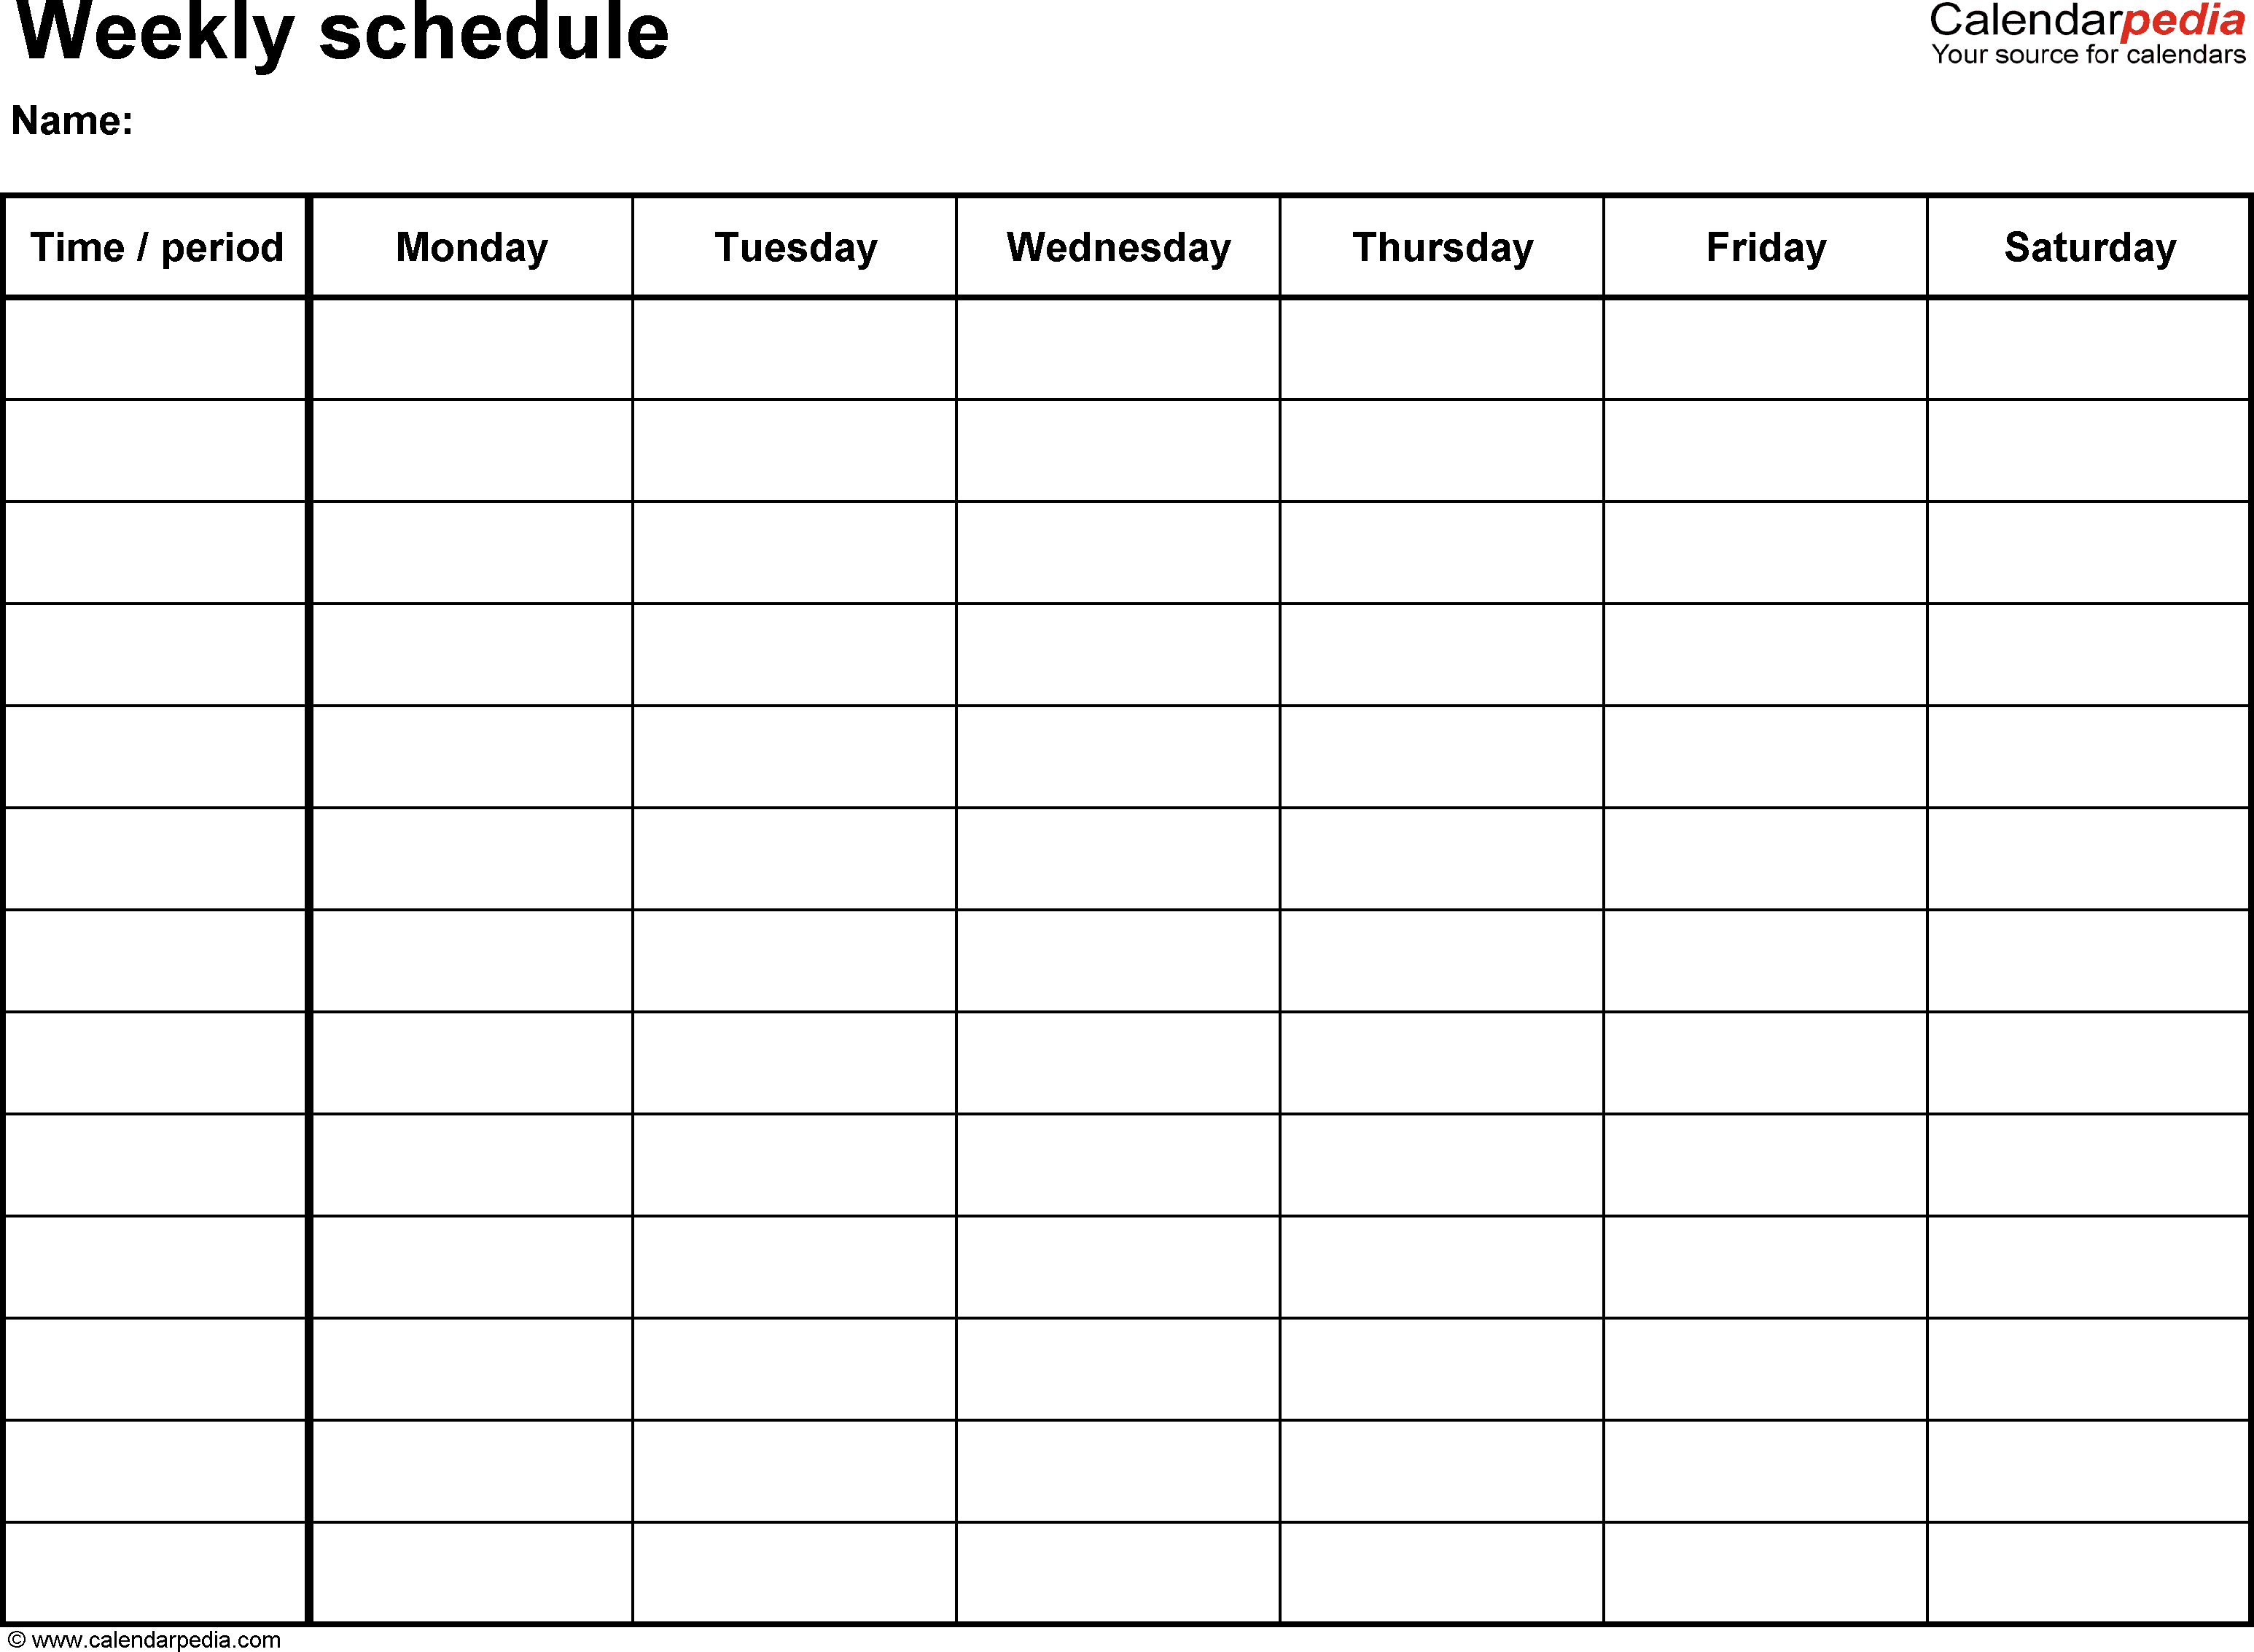 Free Weekly Schedule Templates For Word - 18 Templates within Blank Calendar Printable With Times